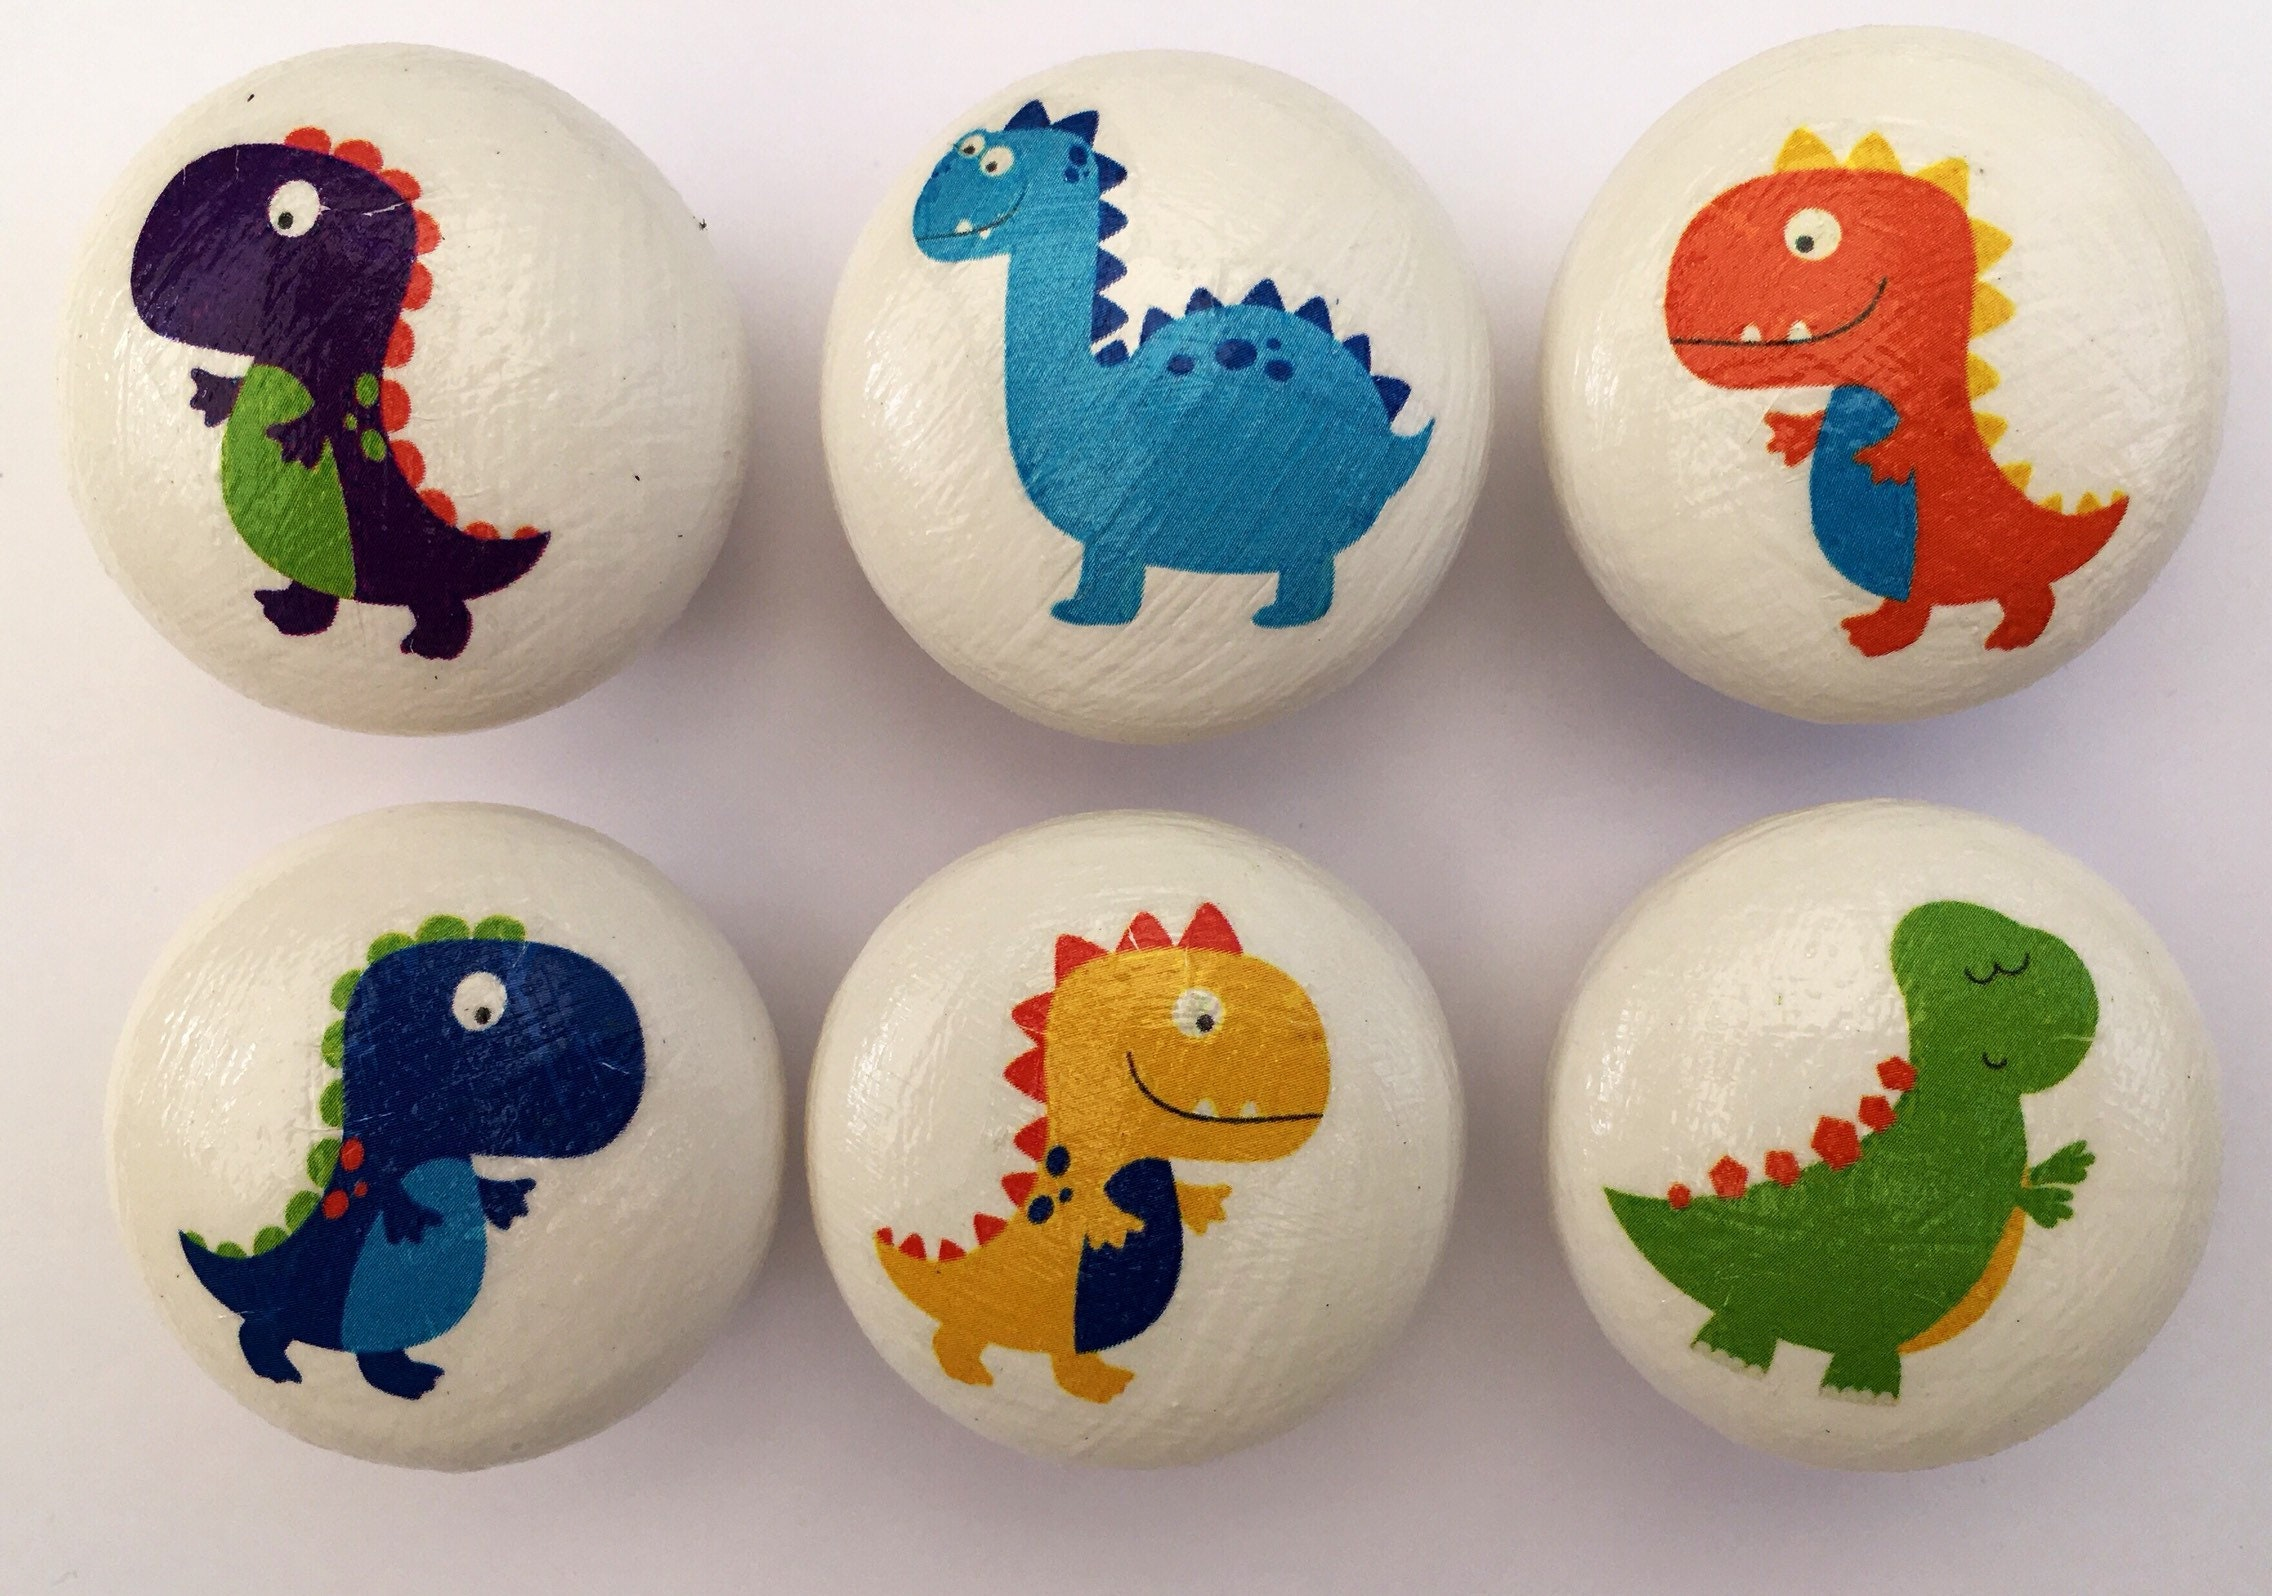 Wooden handmade dinosaur drawer knobs. Kids/nursery drawer knobs in assorted dinosaur designs(41mm) with screws. Dinosaur decor drawer pulls